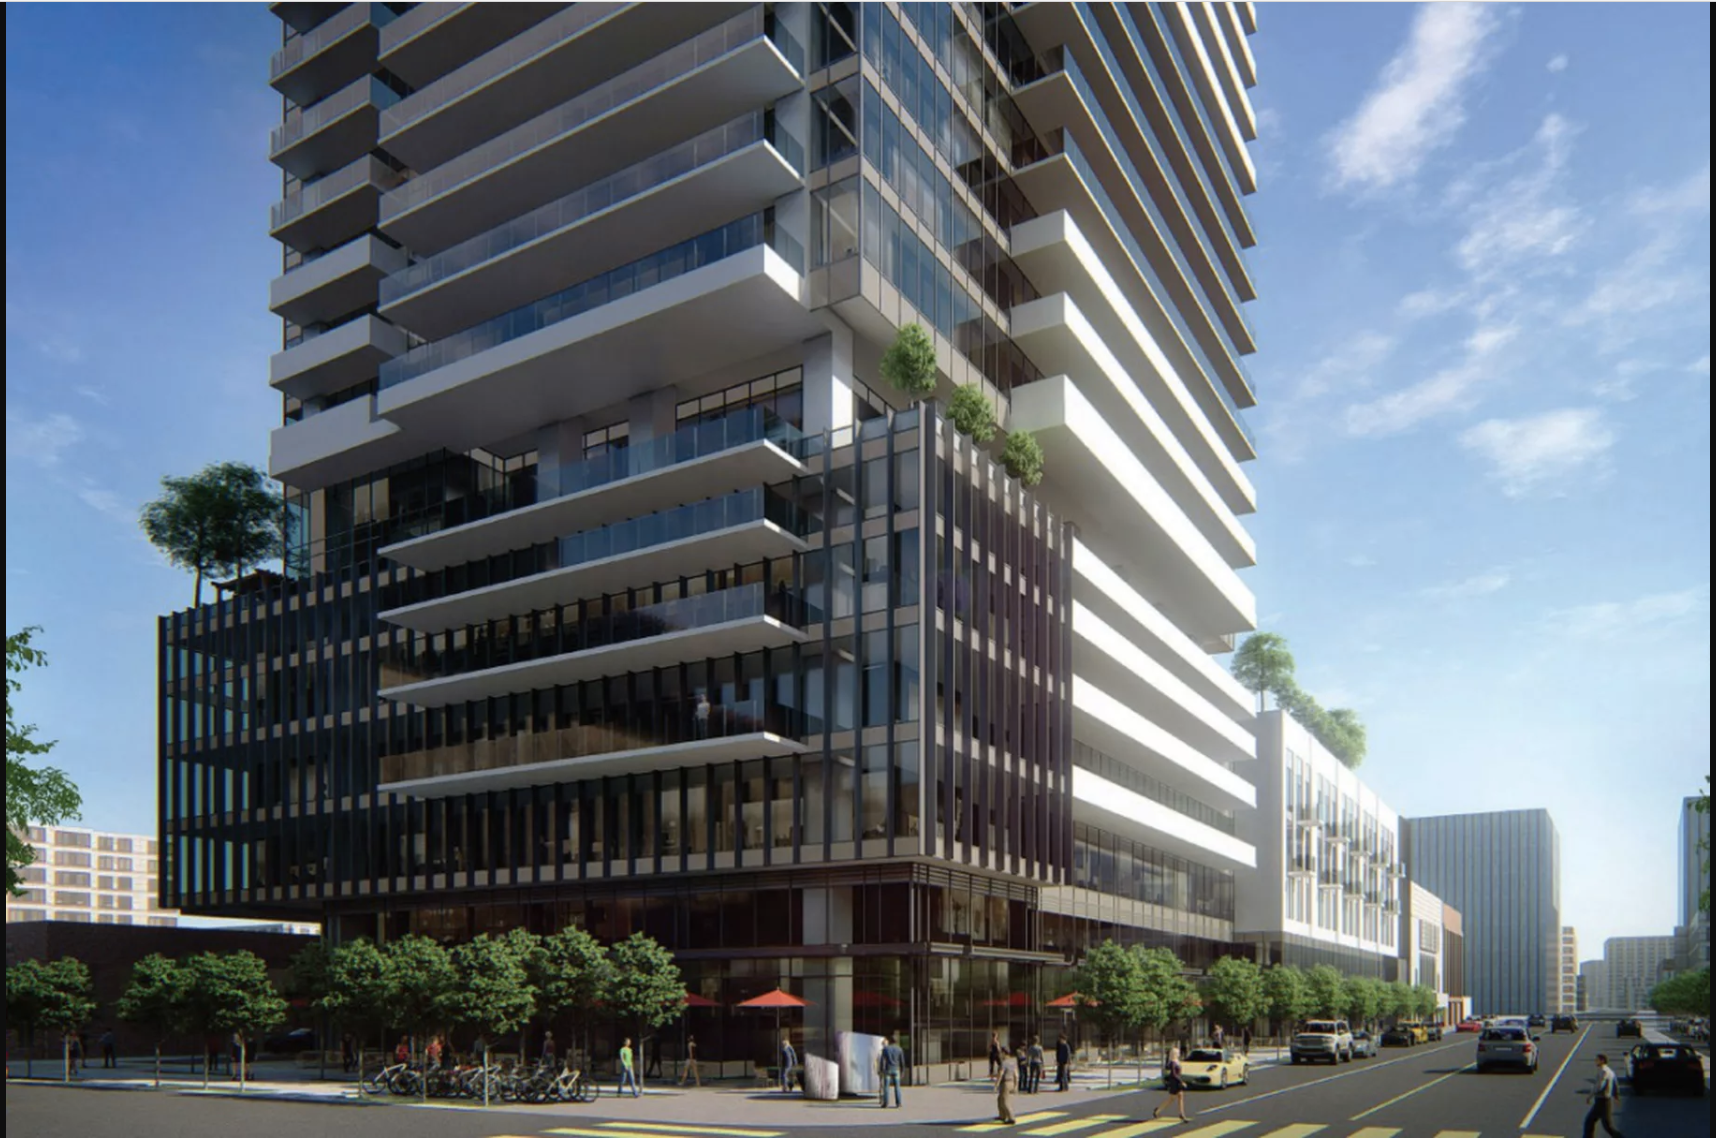 The tower would include 700 apartments and 15,000 square feet of commercial space. Renderings via Department of City Planning